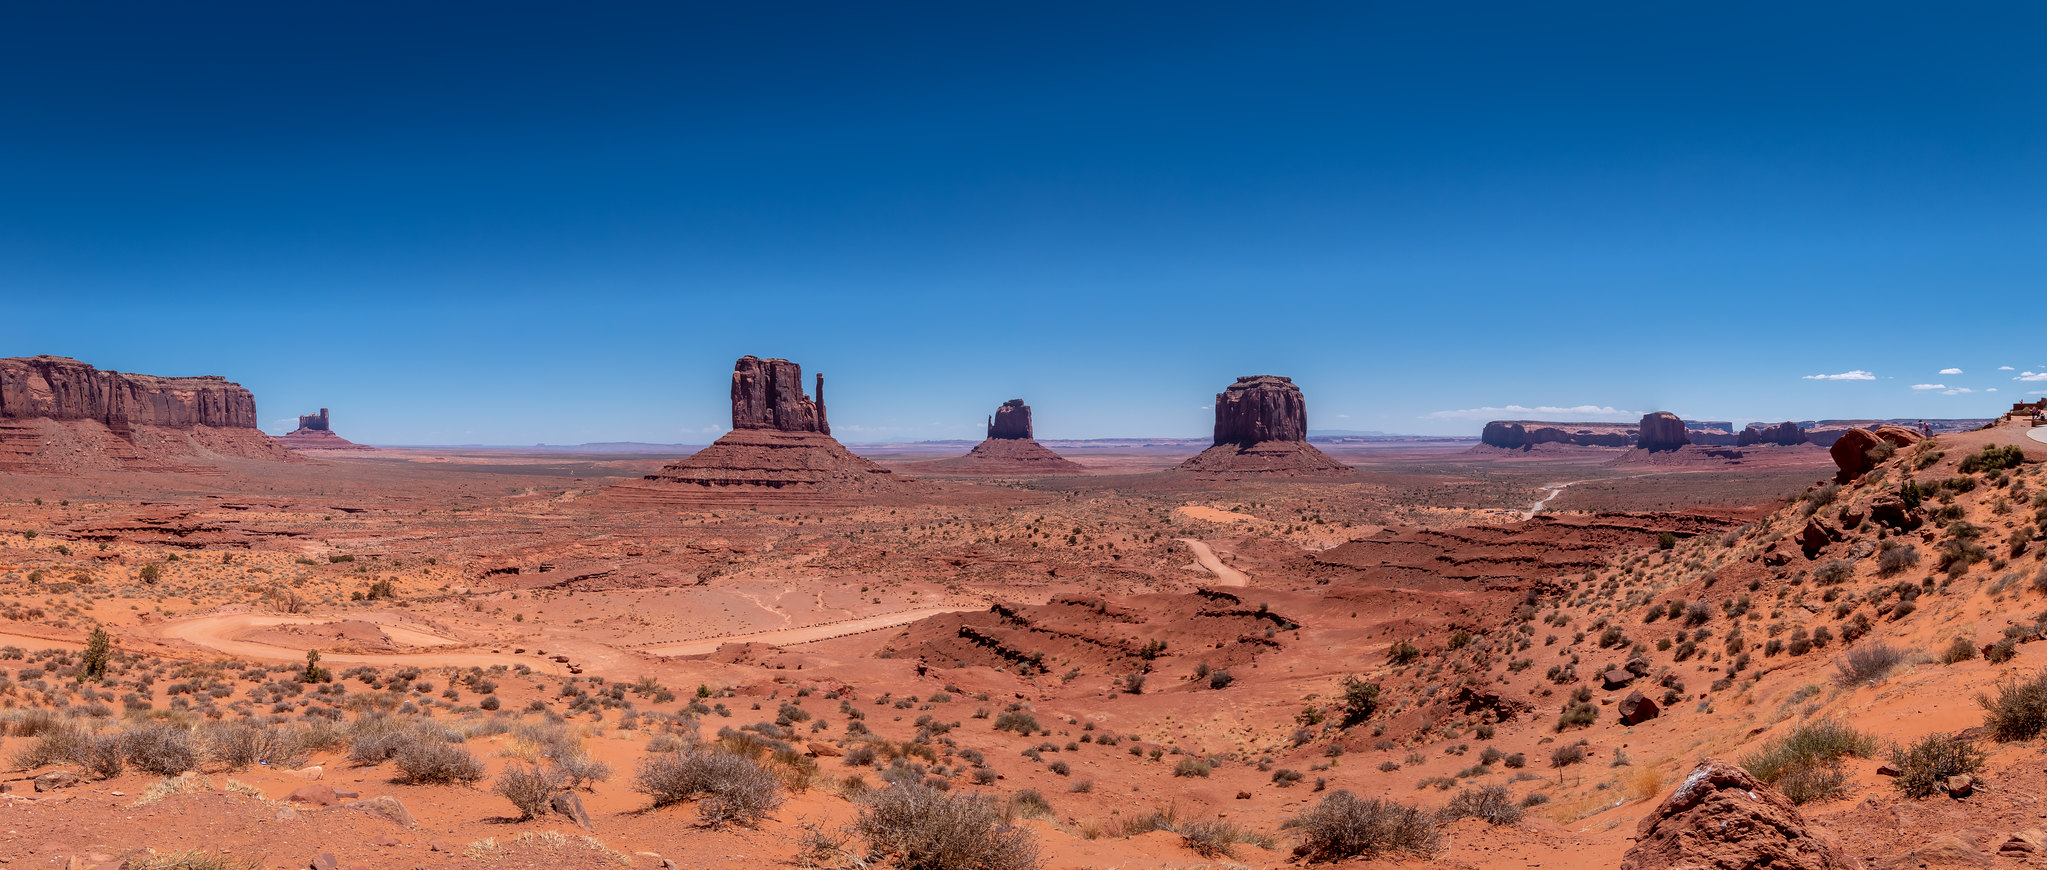 Monument Valley - Arizona - [USA]